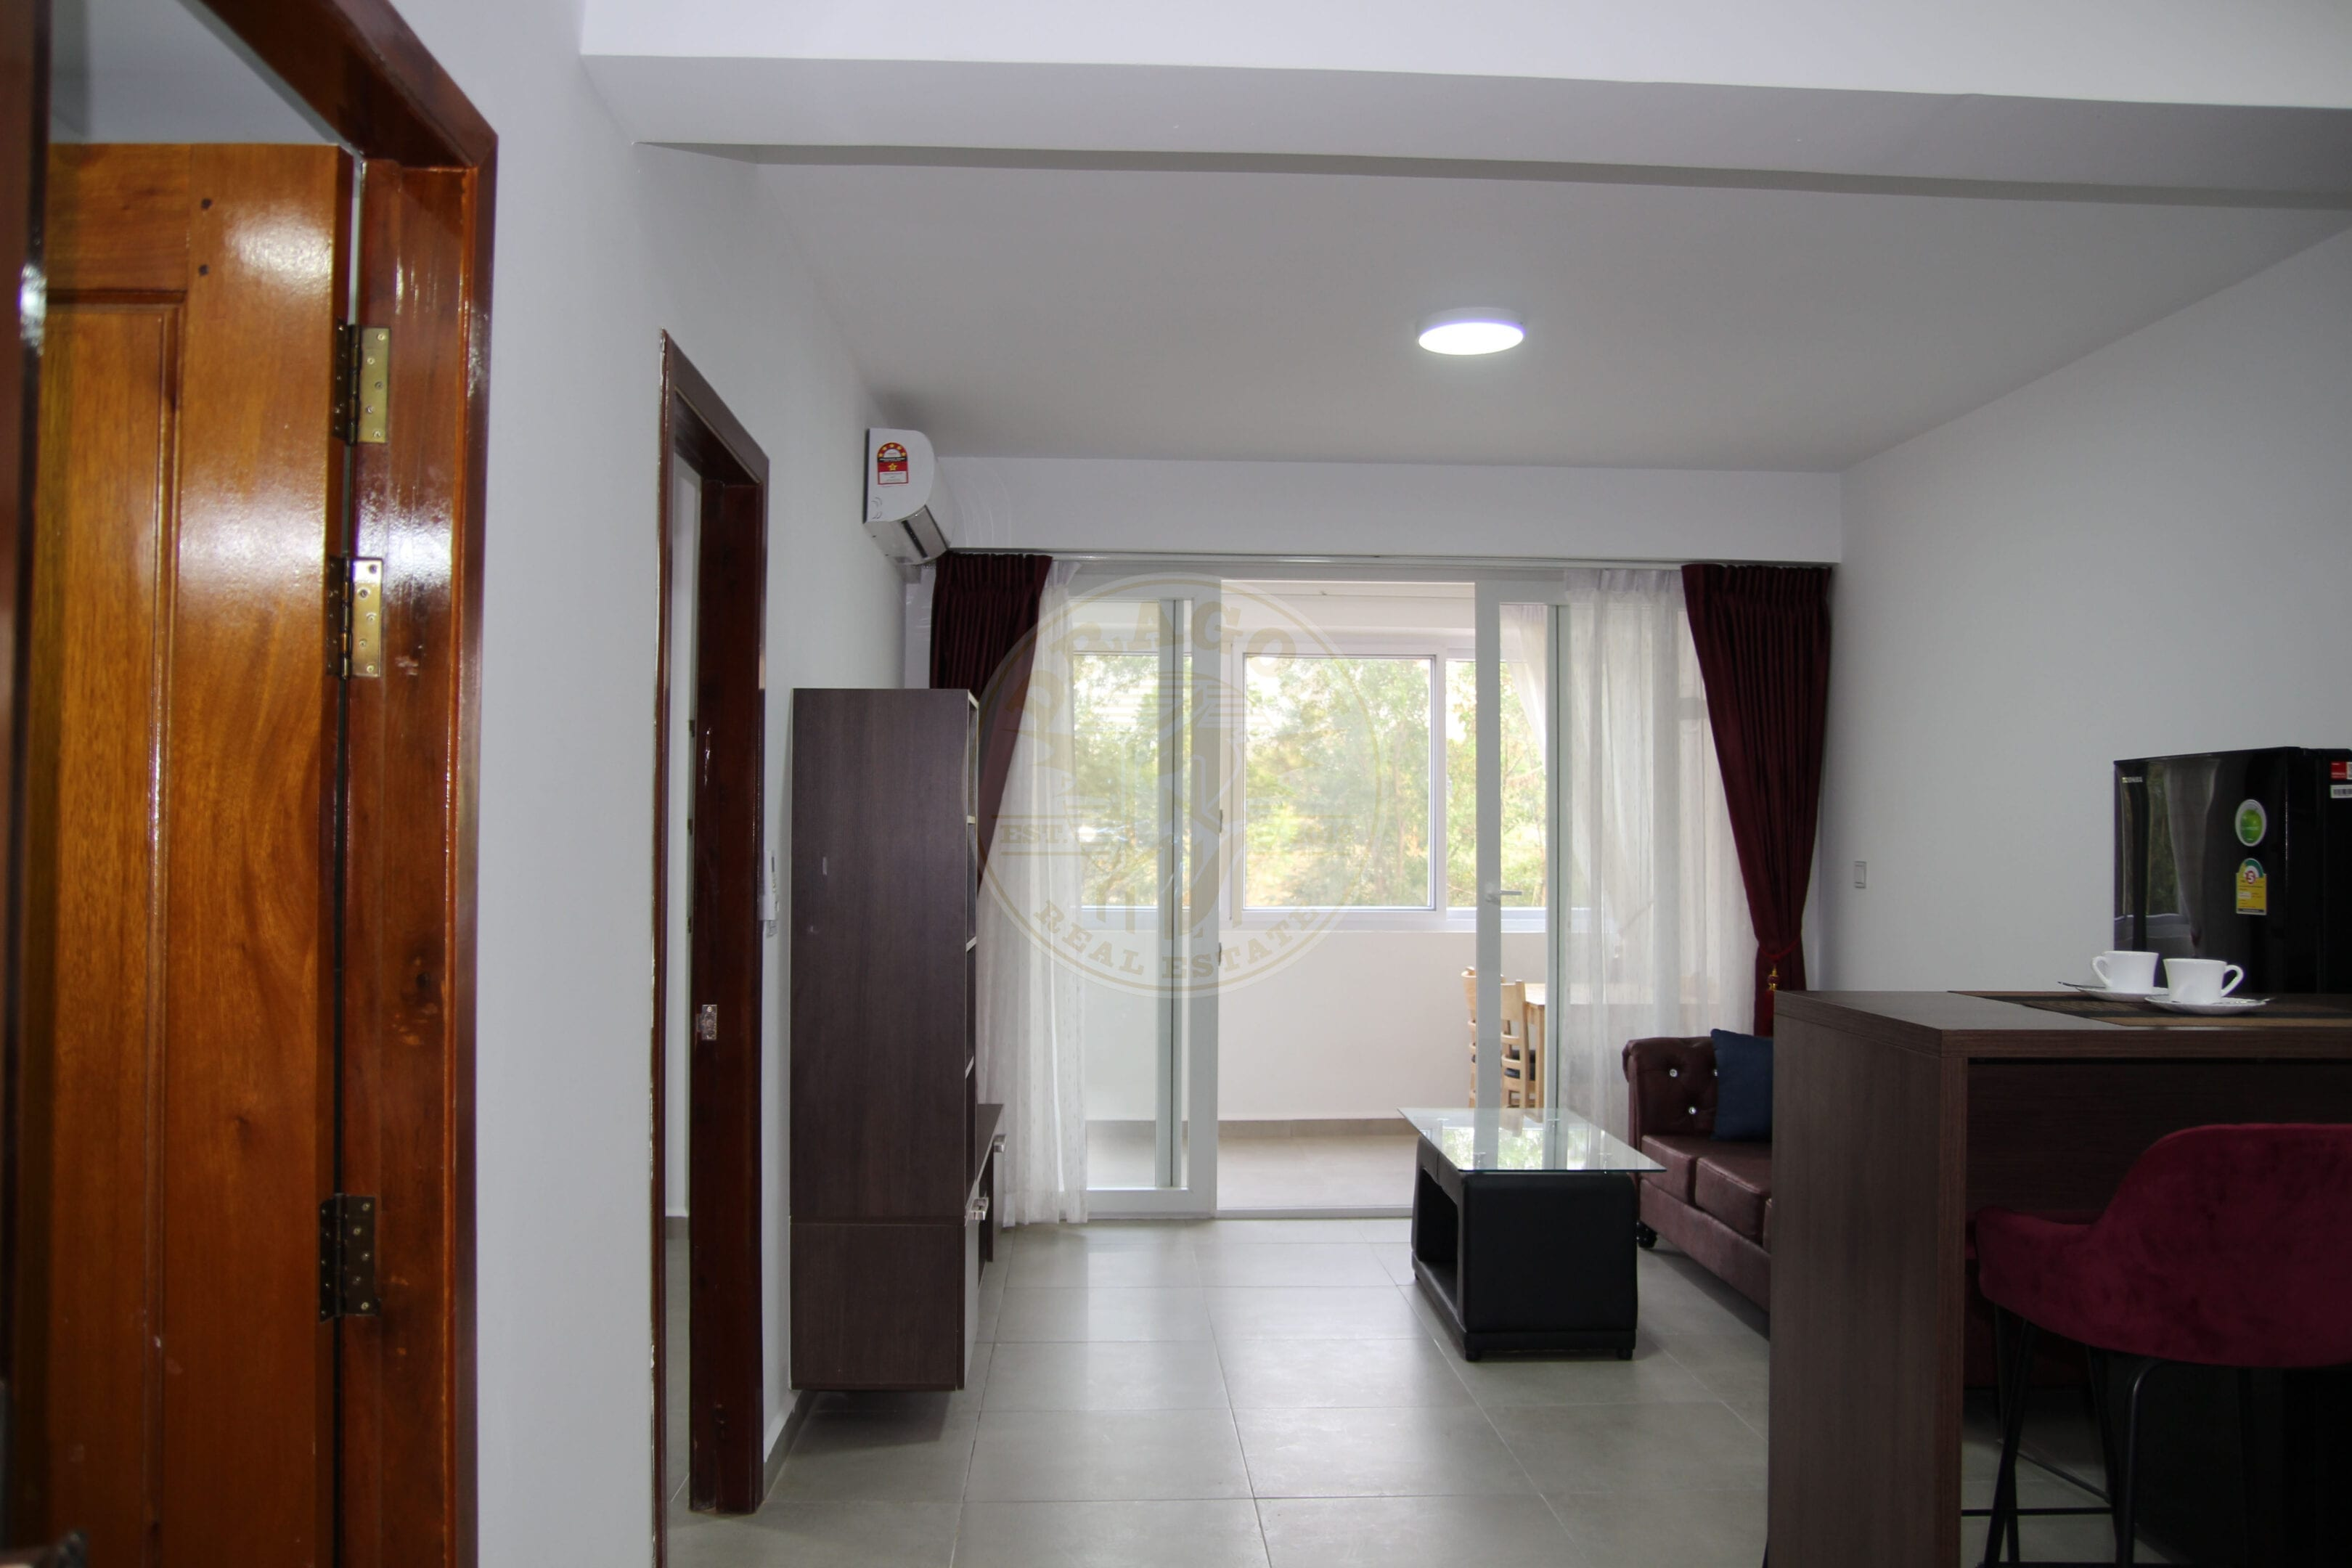 Remarkable Value. Apartment for Rent. Dragon Real Estate